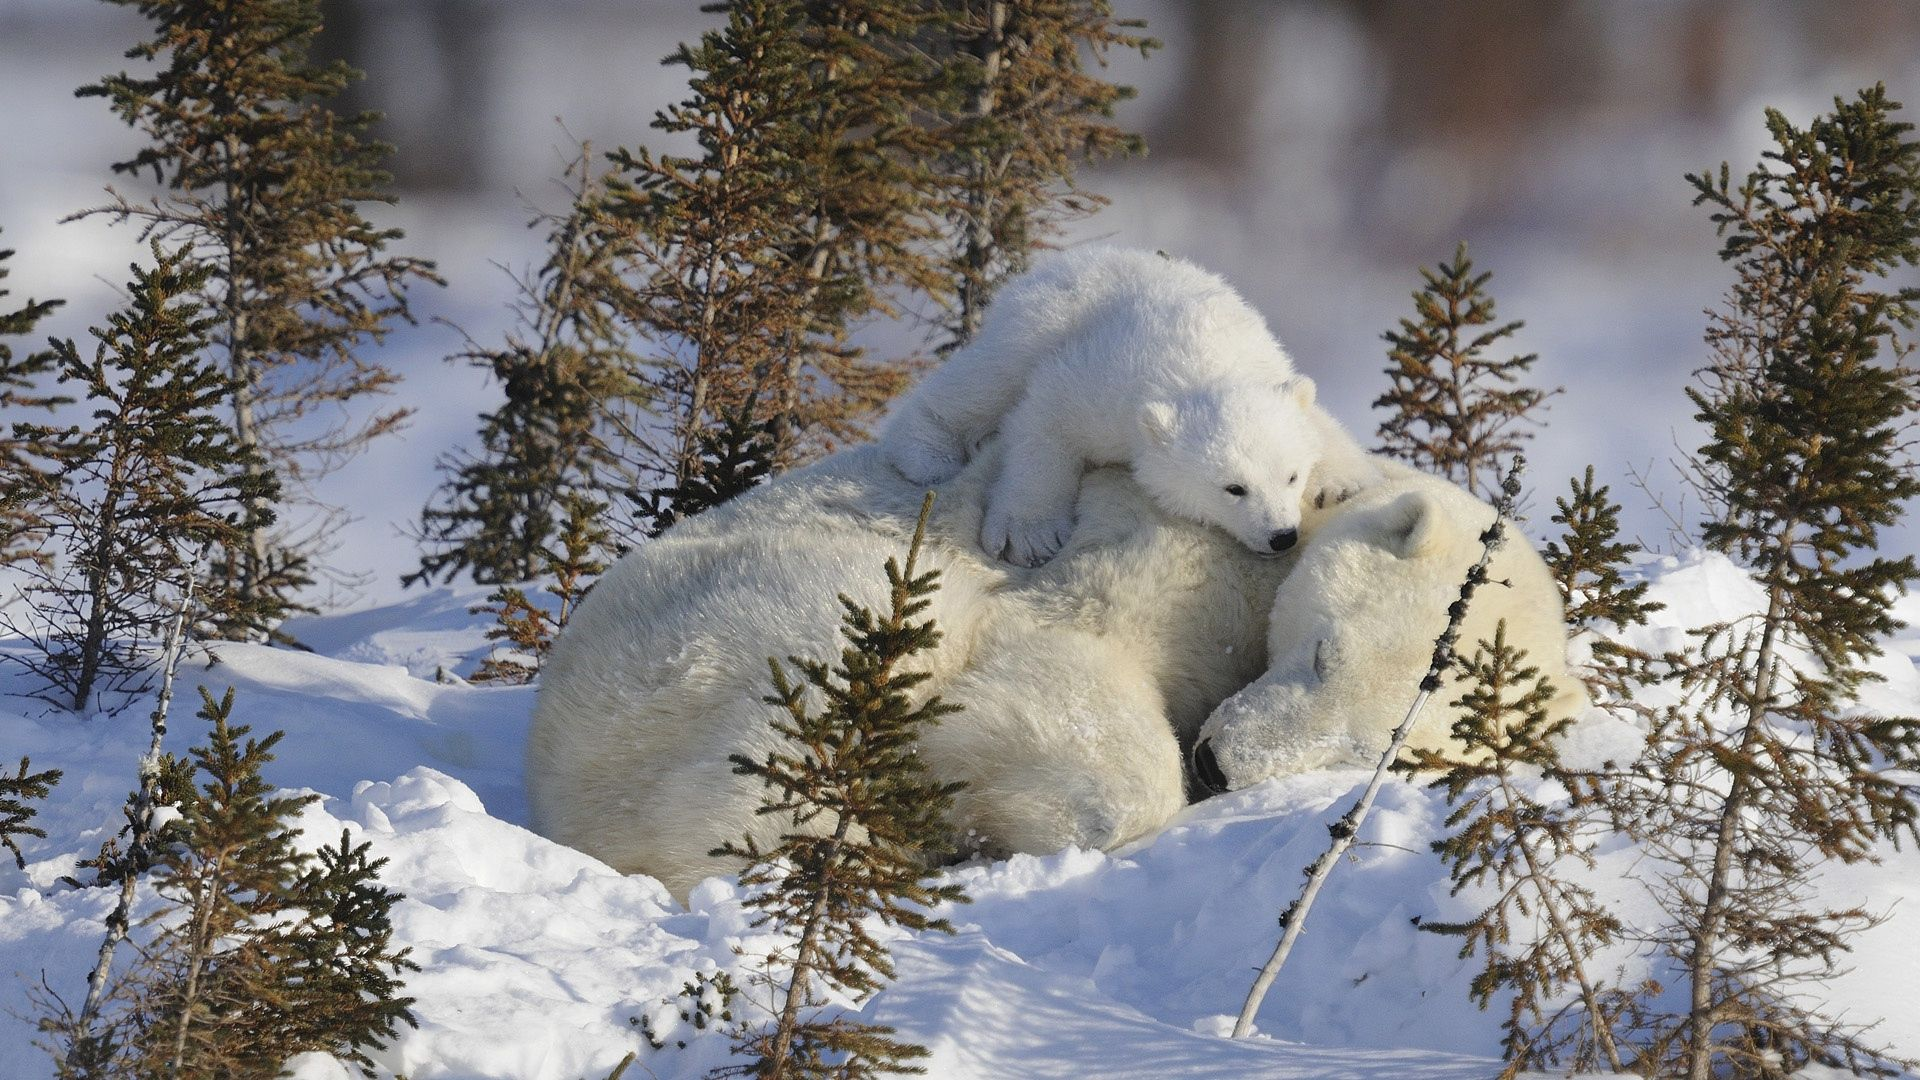 152950 download wallpaper Animals, White Bears, Polar Bears, Family, Branches, Snow screensavers and pictures for free